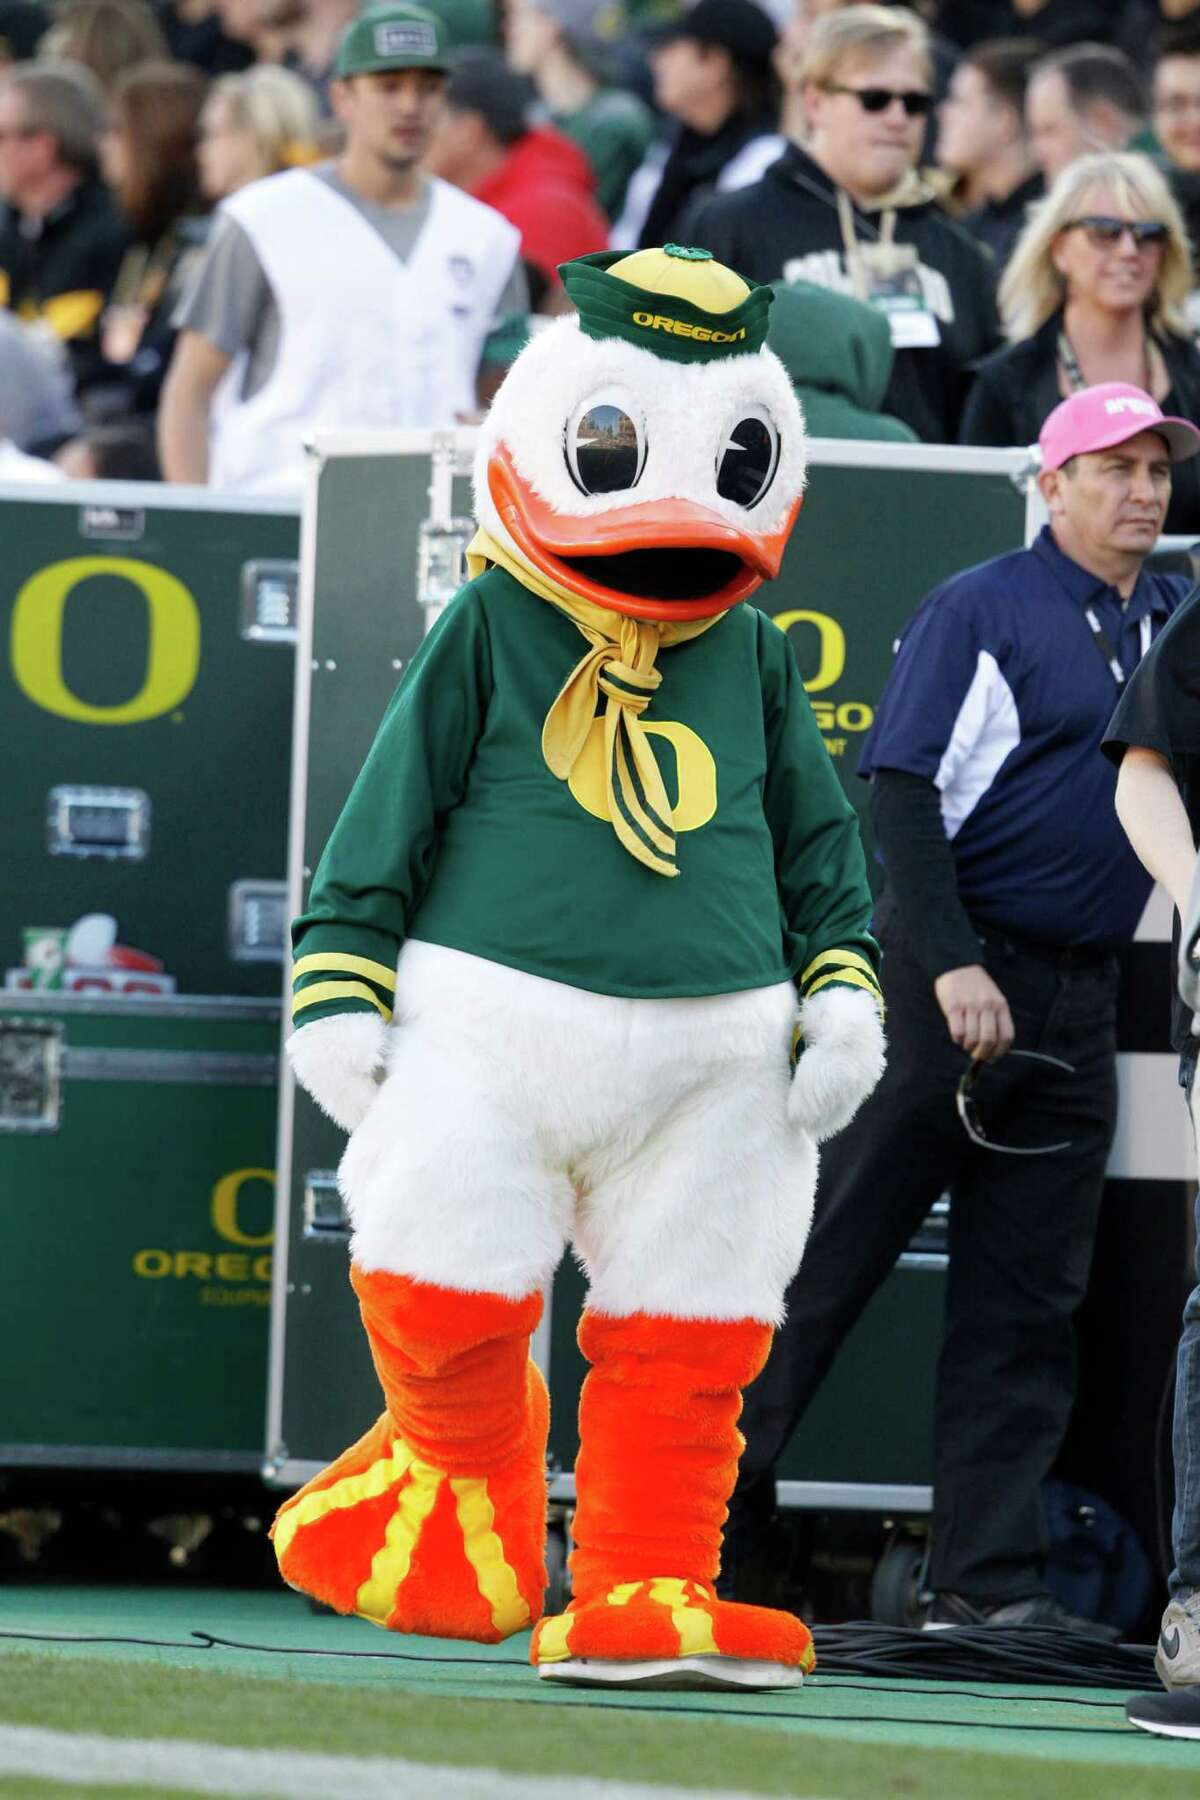 The Oregon Duck replaced the Webfoots as the official mascot.